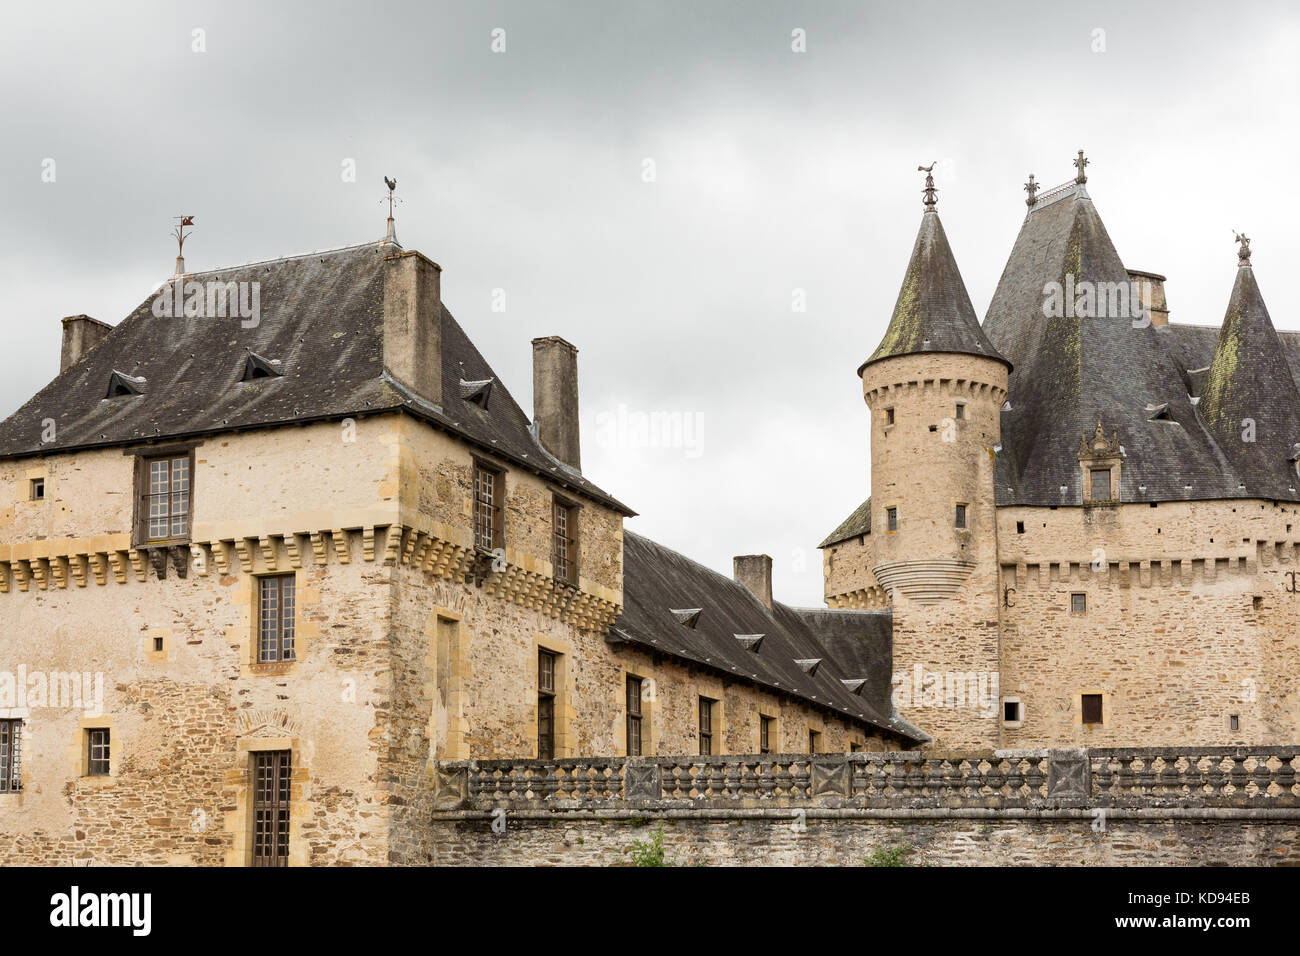 JUMILHAC-LE-GRAND, DORDOGNE, FRANCE: JULY 1, 2017: Detail of the large medieval castle. - Stock Image